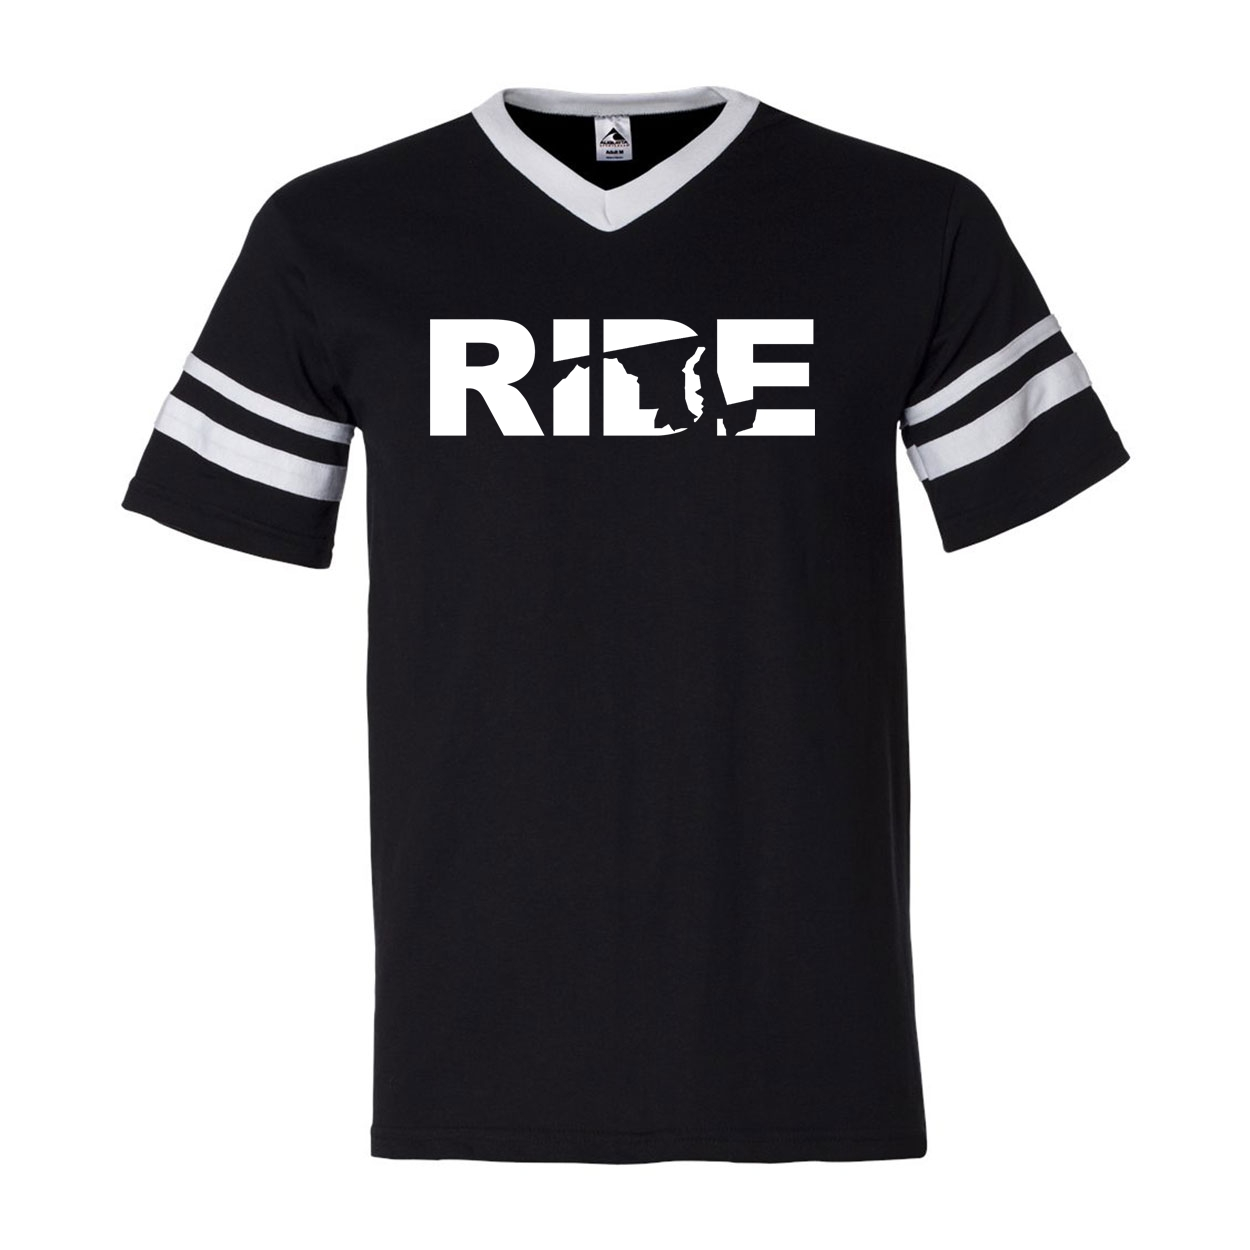 Ride Maryland Classic Premium Striped Jersey T-Shirt Black/White (White Logo)